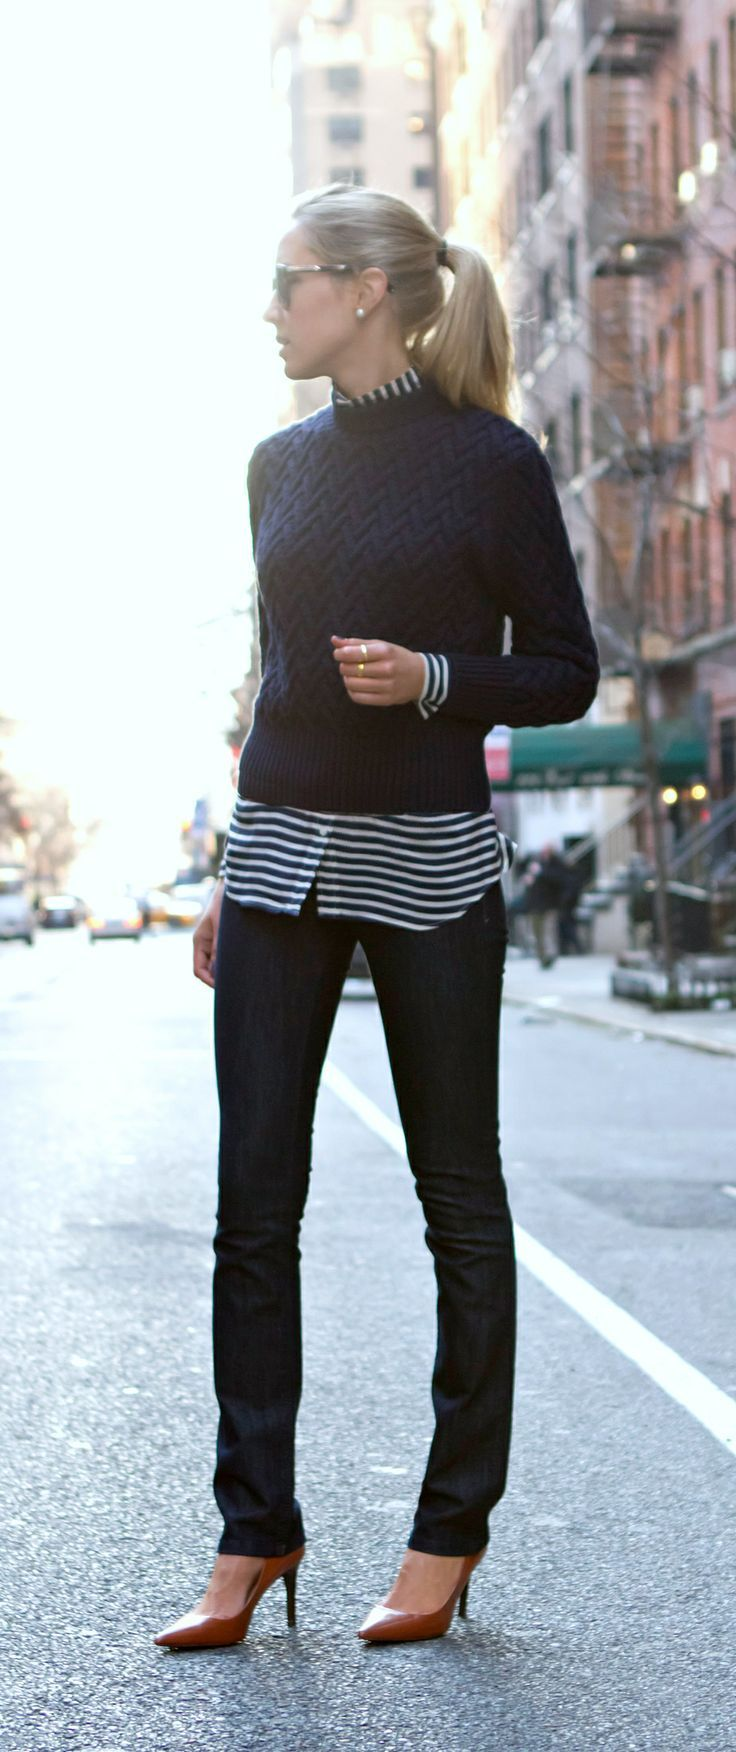 Best 25+ Black pants outfit ideas on Pinterest | Black jeans outfit summer Black jeans and ...